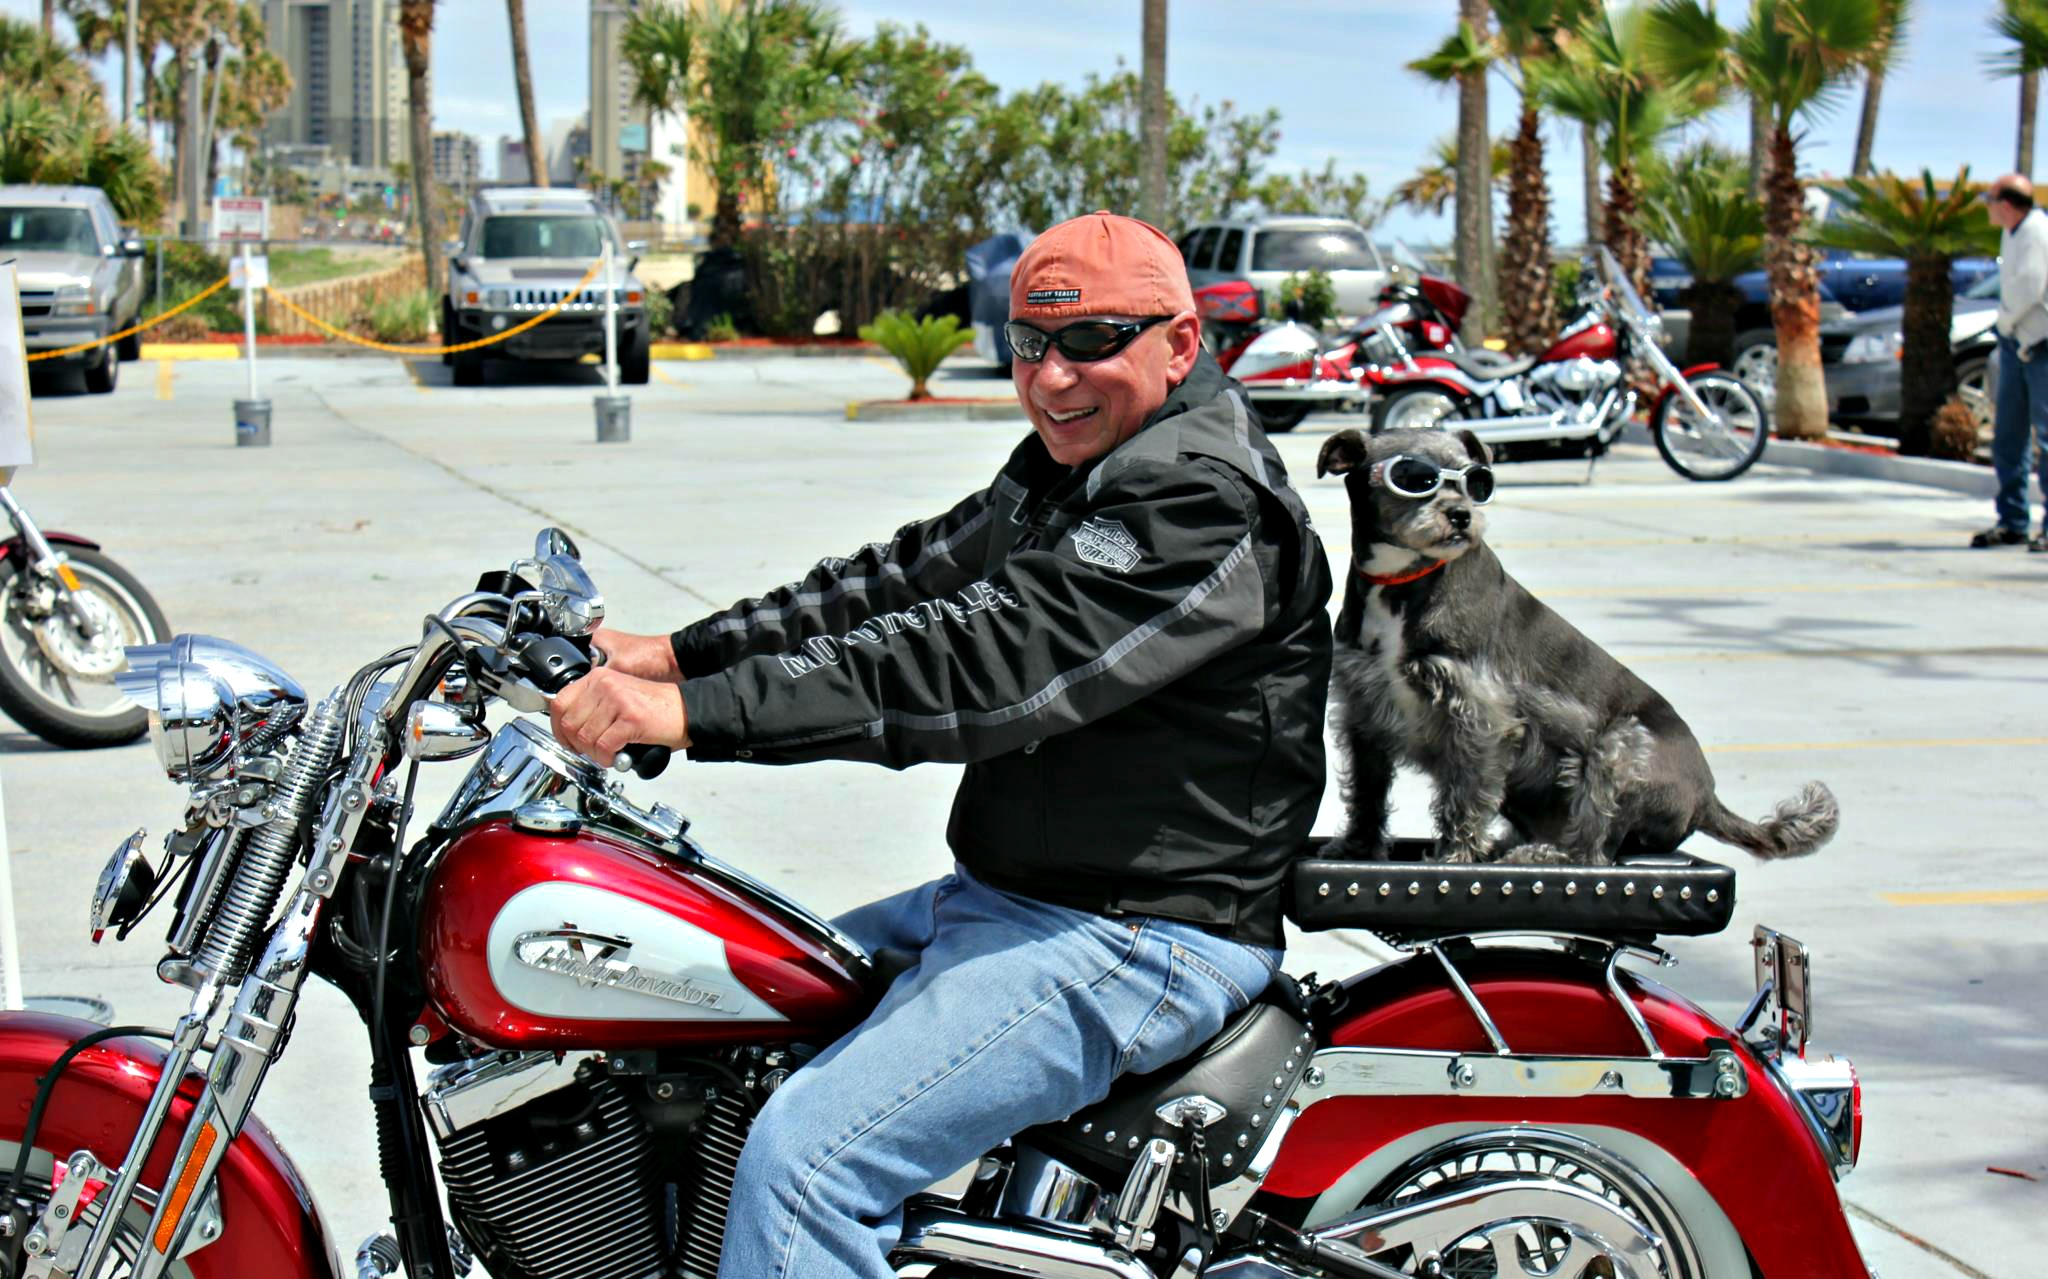 Thunder Beach Motorcyle Rally Biker And His Dog In Panama City Florida